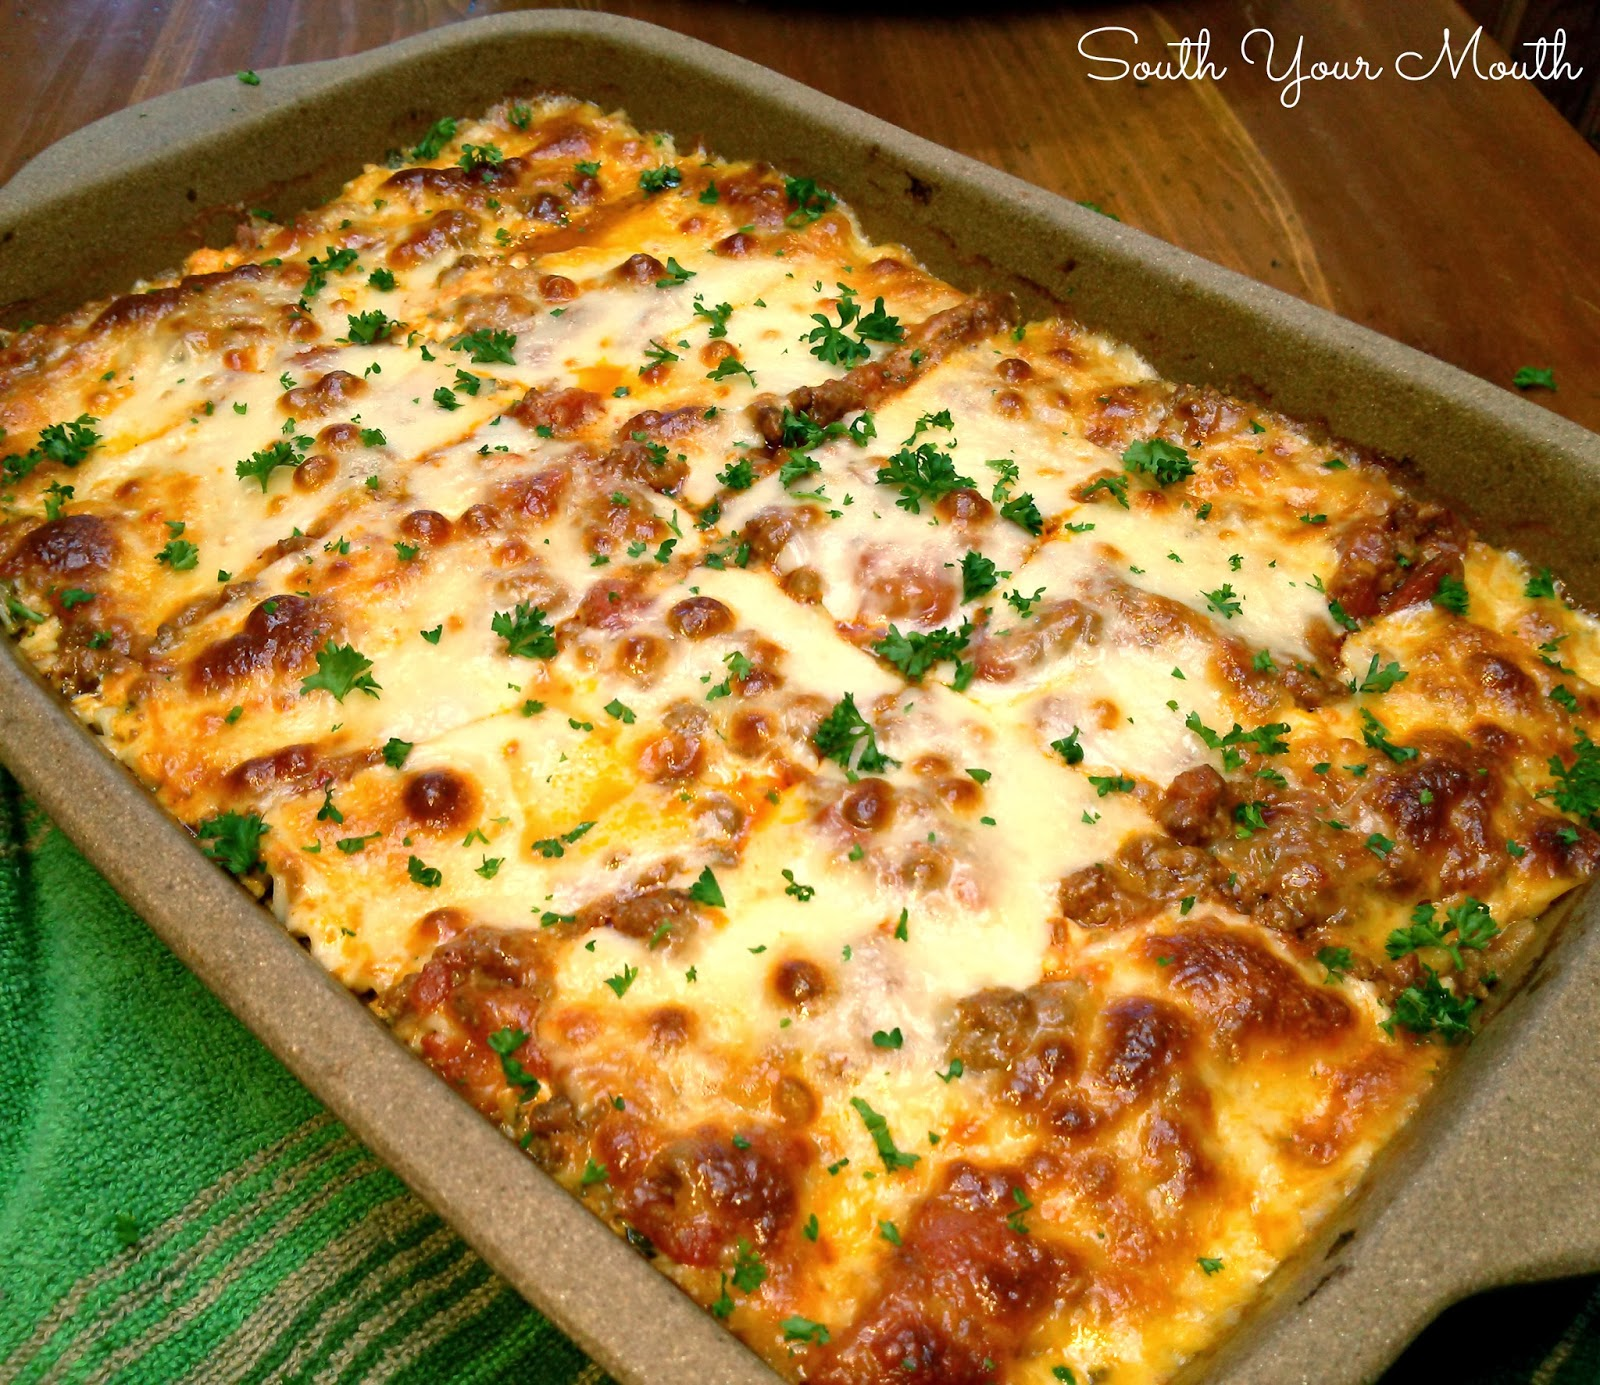 South Your Mouth: 10 Easy Meals Made with Ground Beef